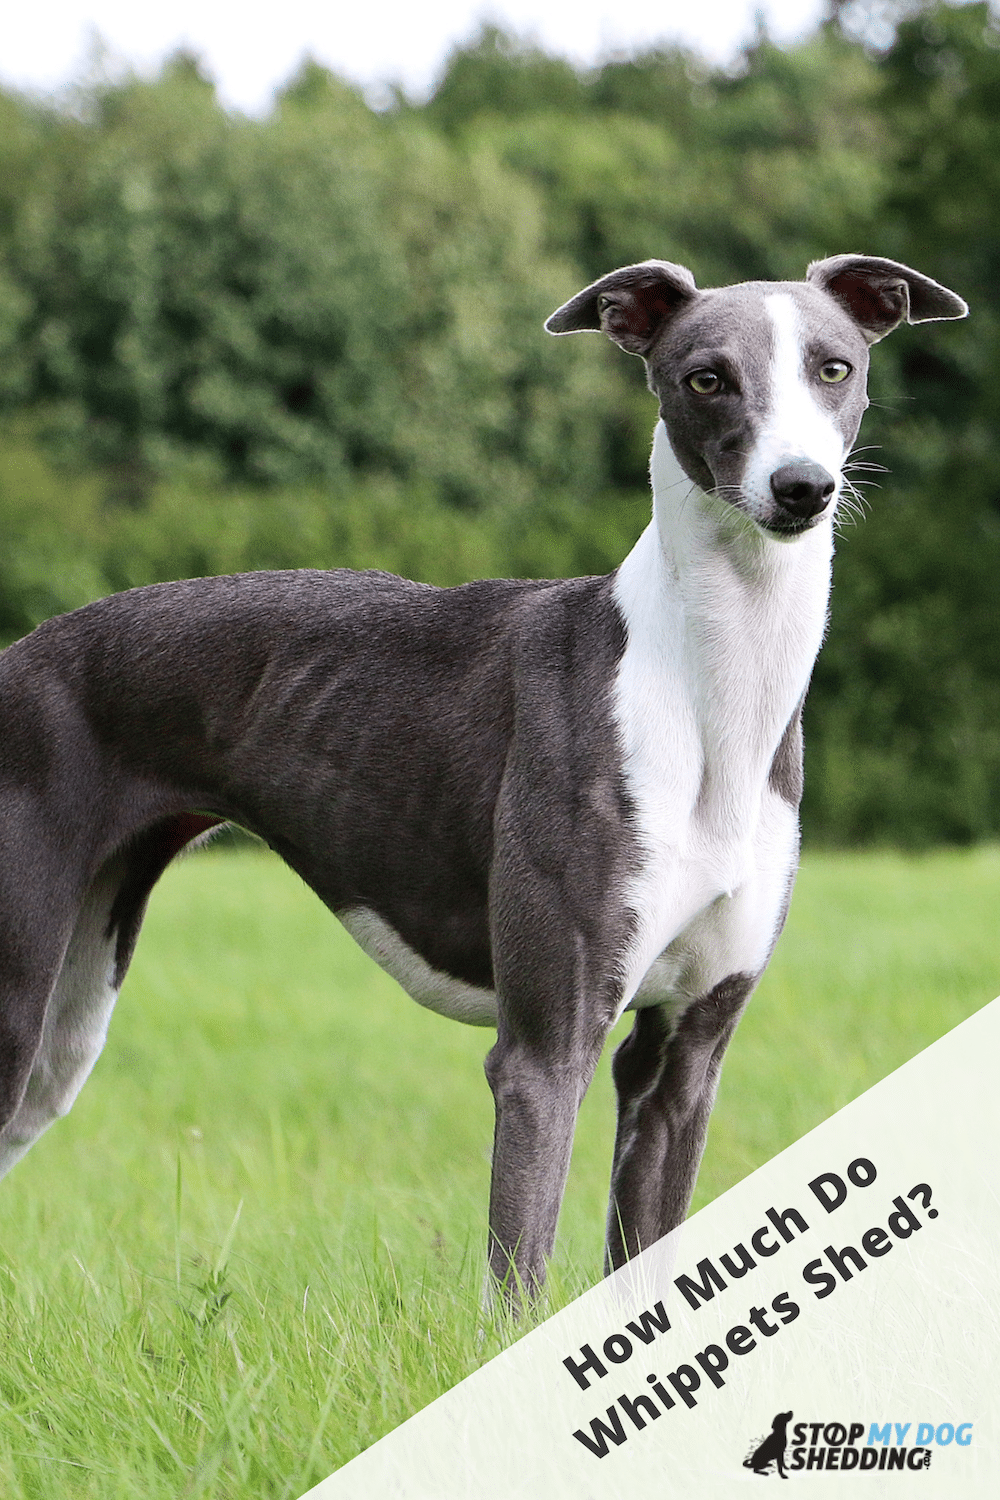 Do Whippets Shed? (All About Whippet Shedding)